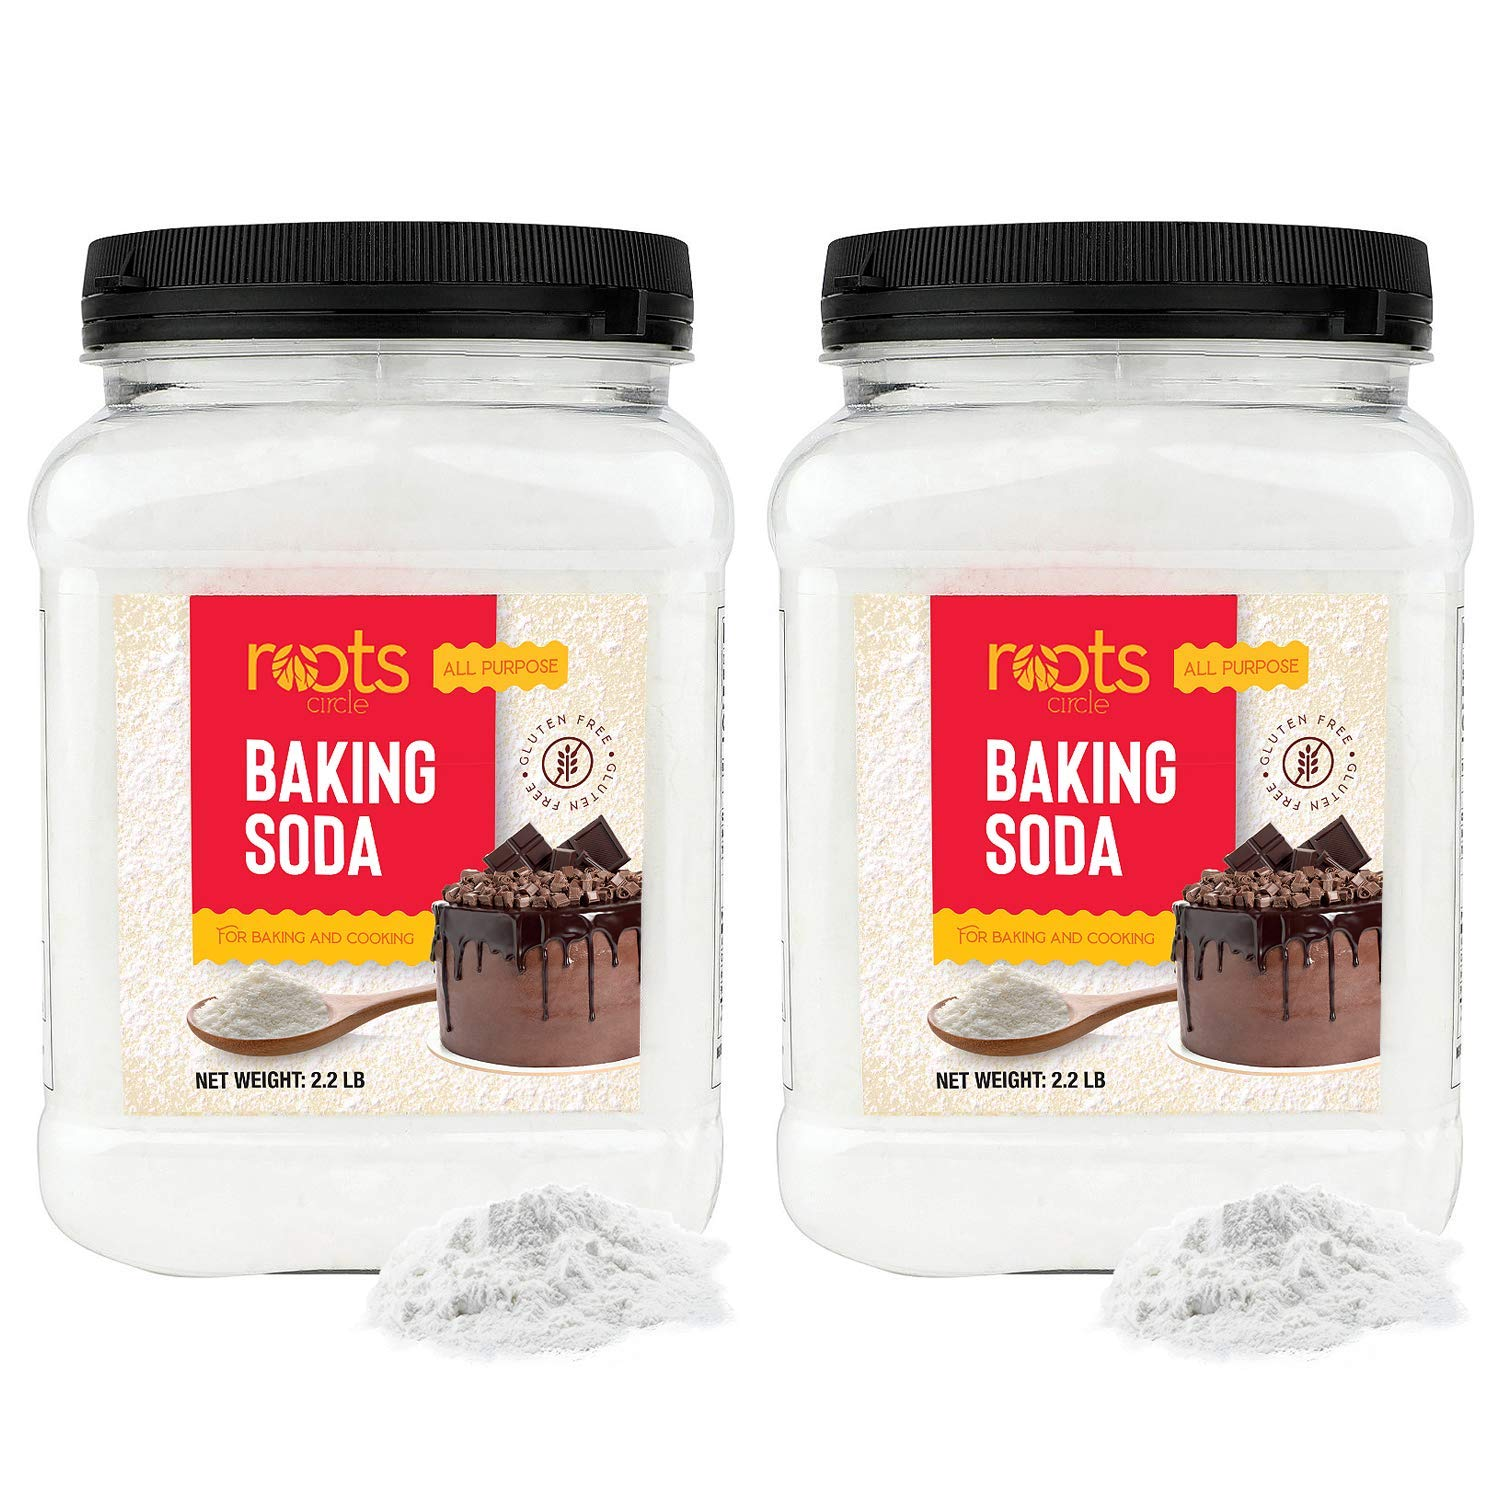 Roots Circle Baking Soda | Bulk Pack 2 35oz Airtight Containers | Gluten-Free All-Purpose Sodium Bicarbonate for Cooking & Baking | All-Natural Cleaning Agent & Deodorizer for Fridge, Carpet, Laundry